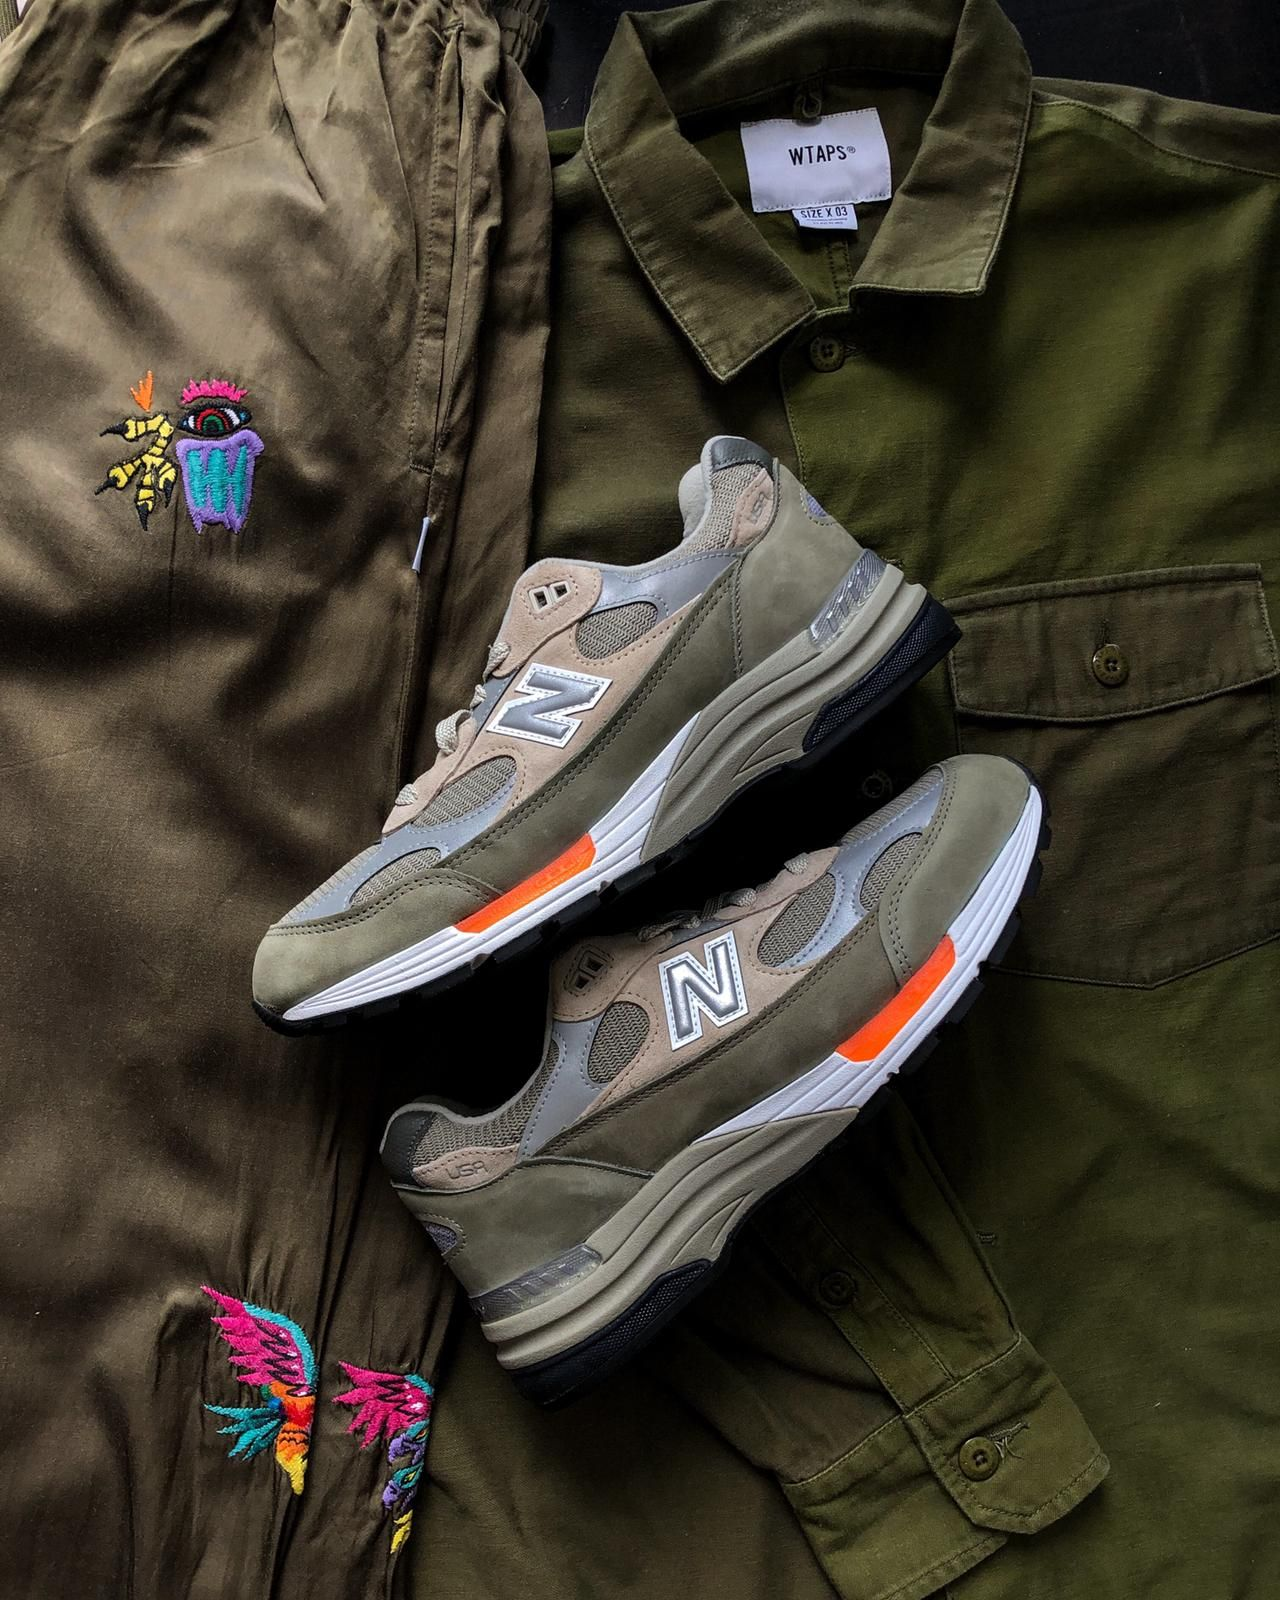 WTAPS x New Balance M992WT: How to Get the Limited-Edition Sneakers in Singapore